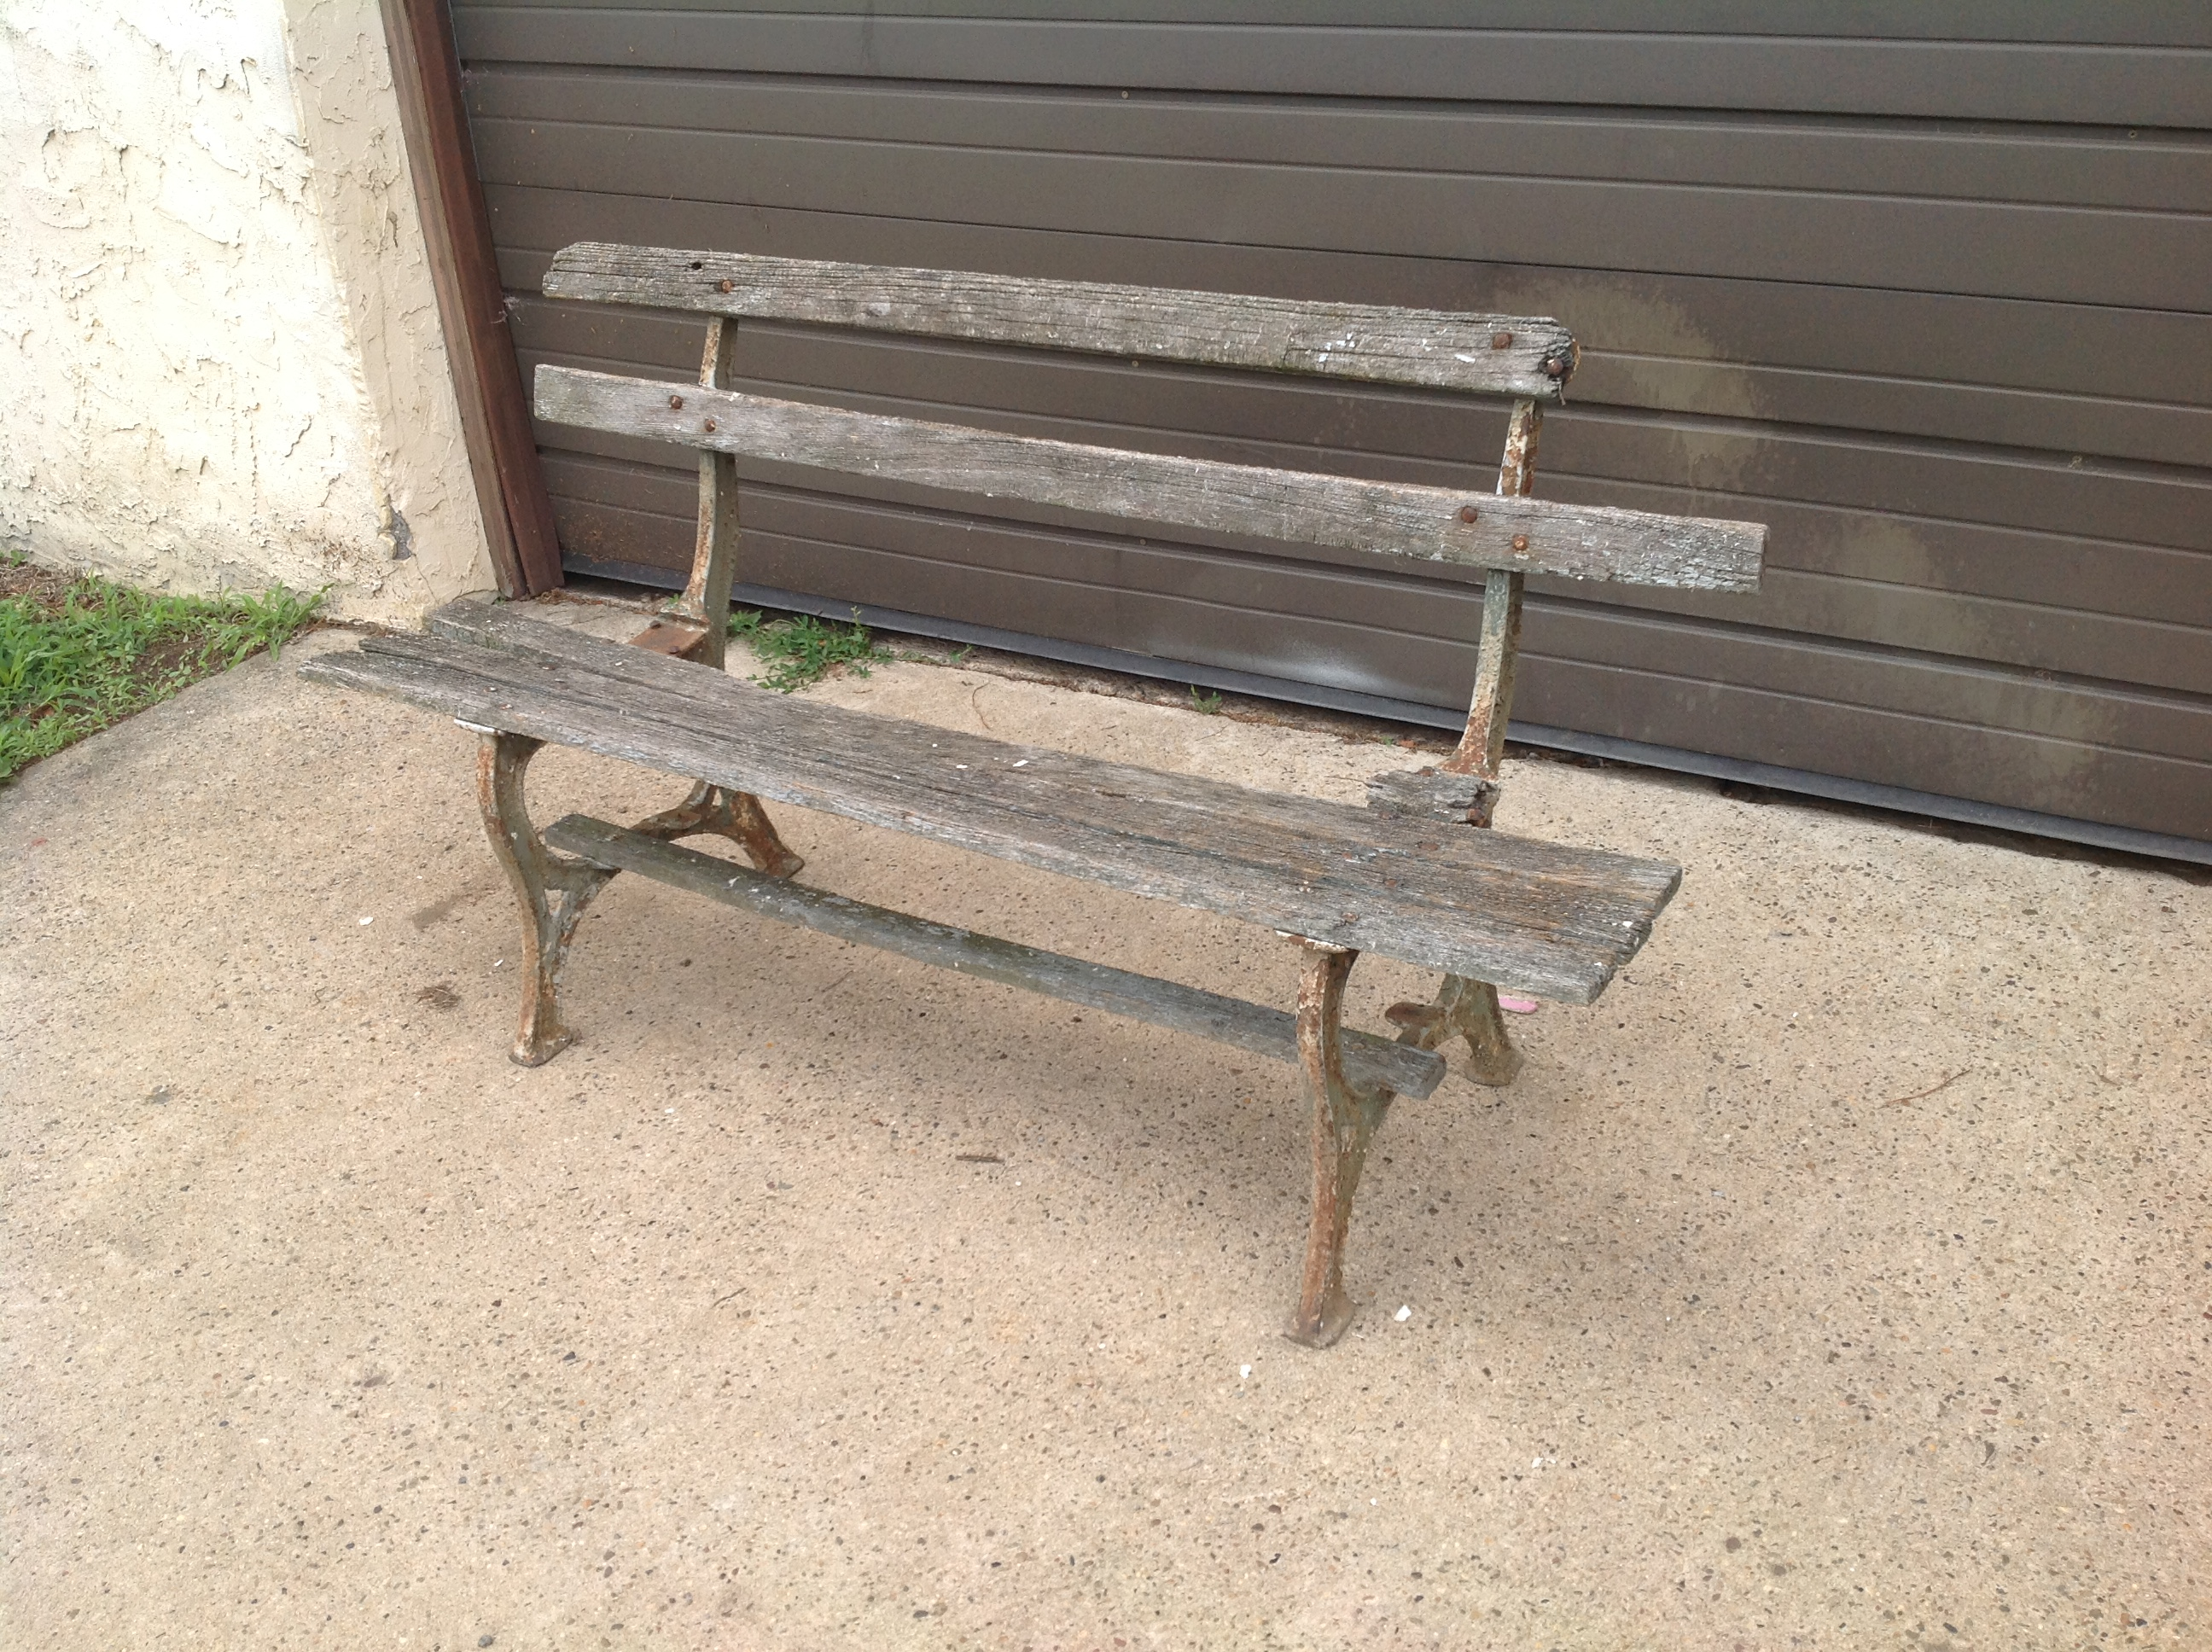 with benches black side details proprentalsny s seat com metal long source new park and id x pieces model prop for high iron view name wooden real e deep island title york back aged props wide bench best